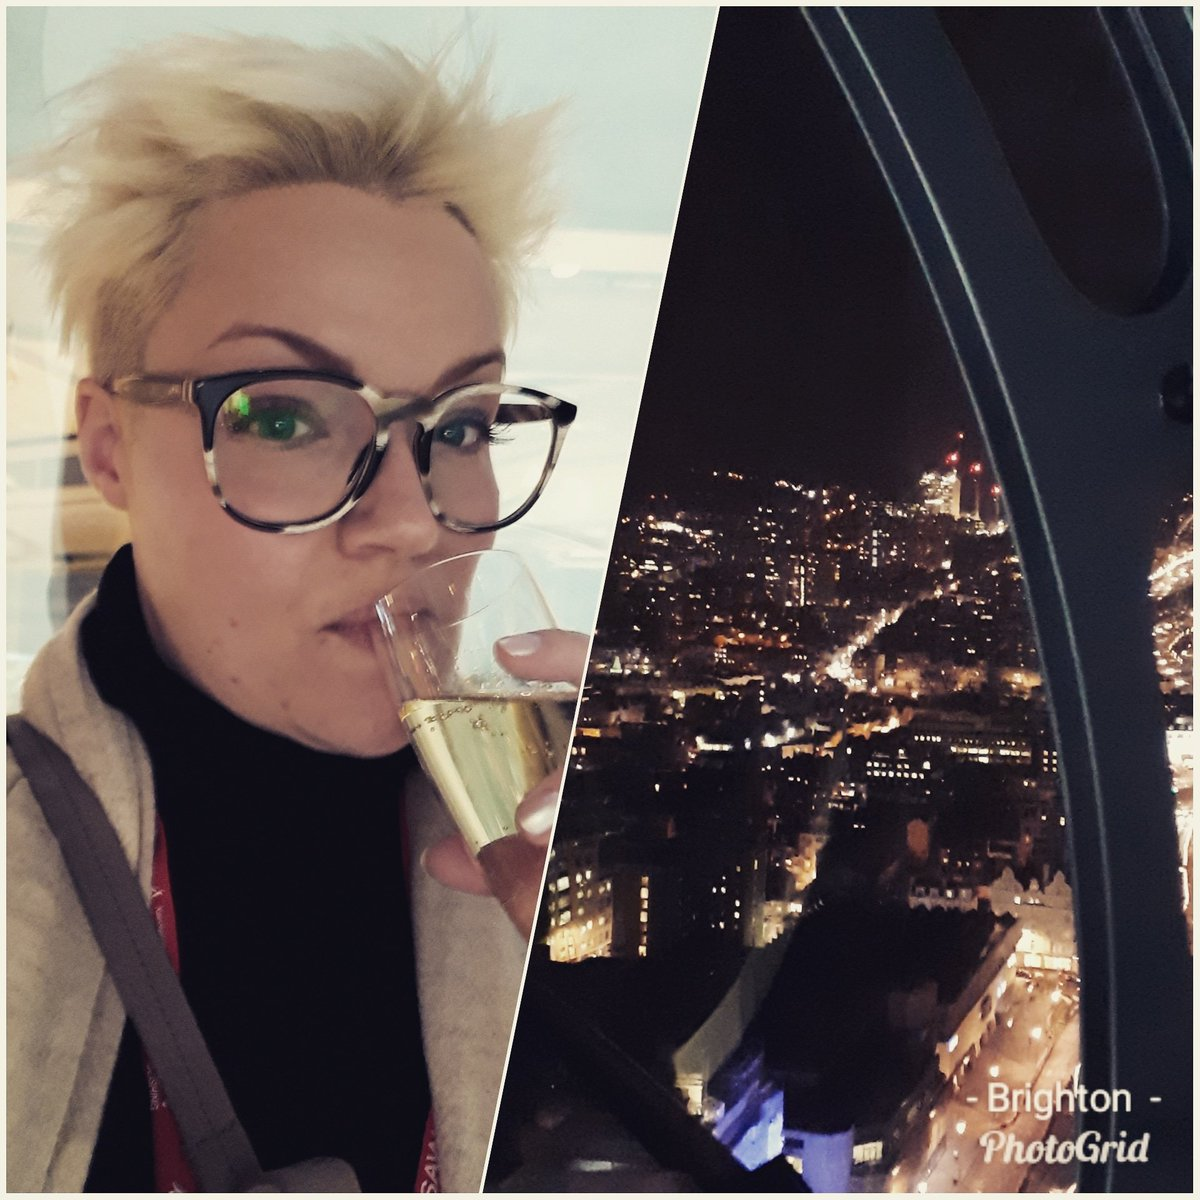 """Thanks @BA_i360 for an amazing """"flight"""" #ACE2018 #NiftyNetworking now on to the @ACEnterprises gala dinner and awards! https://t.co/WkXeALKaei"""